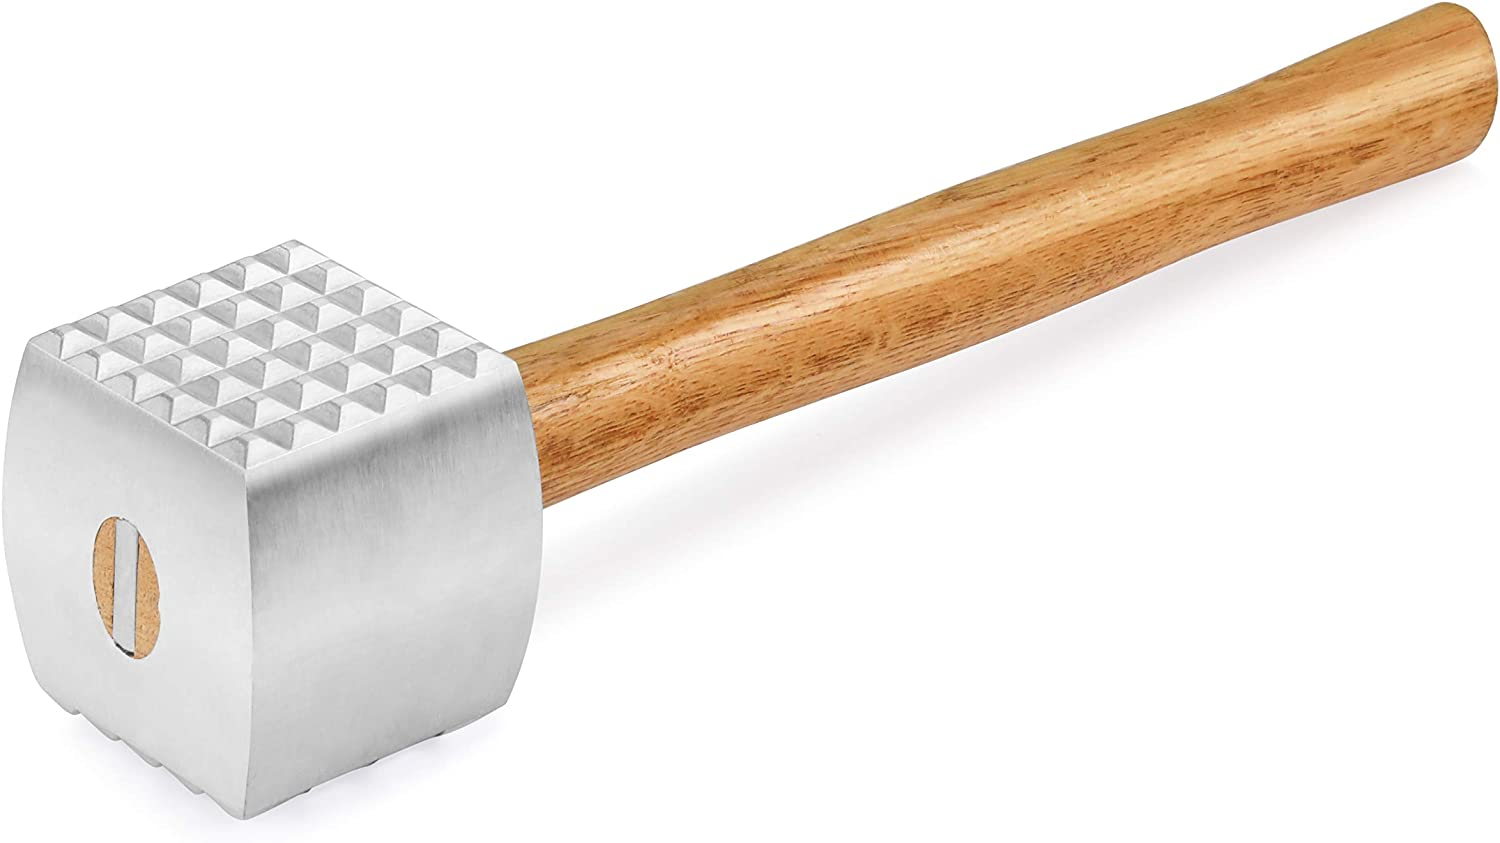 New Star Foodservice 36398 Wood Handle Aluminum Meat Tenderizer/Mallet/Hammer, 13-Inch Overall